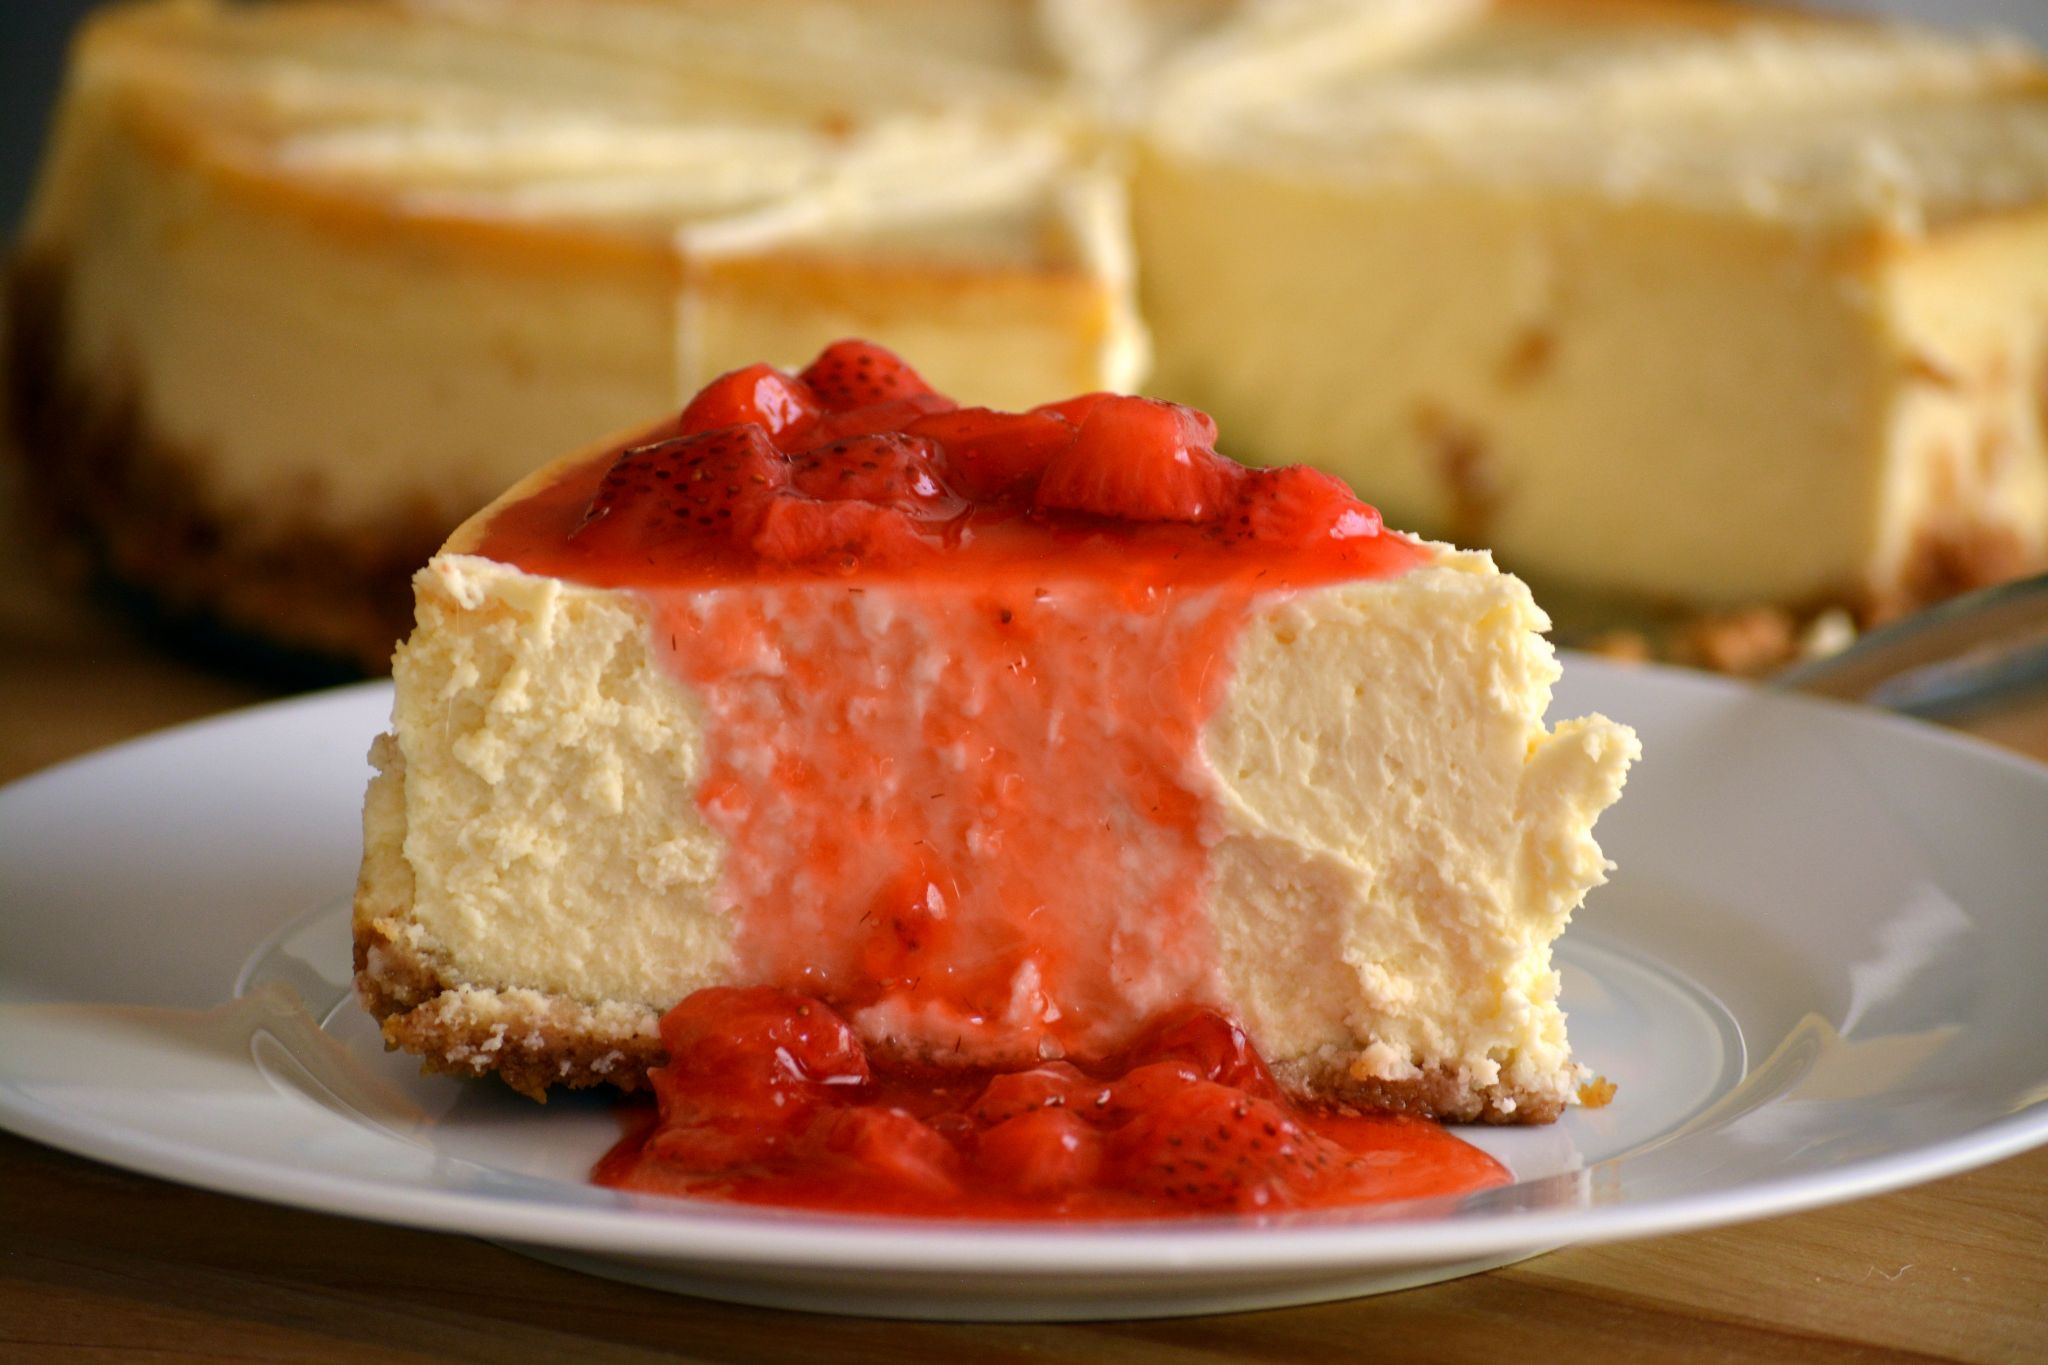 Cheesecake o Pastel de Queso